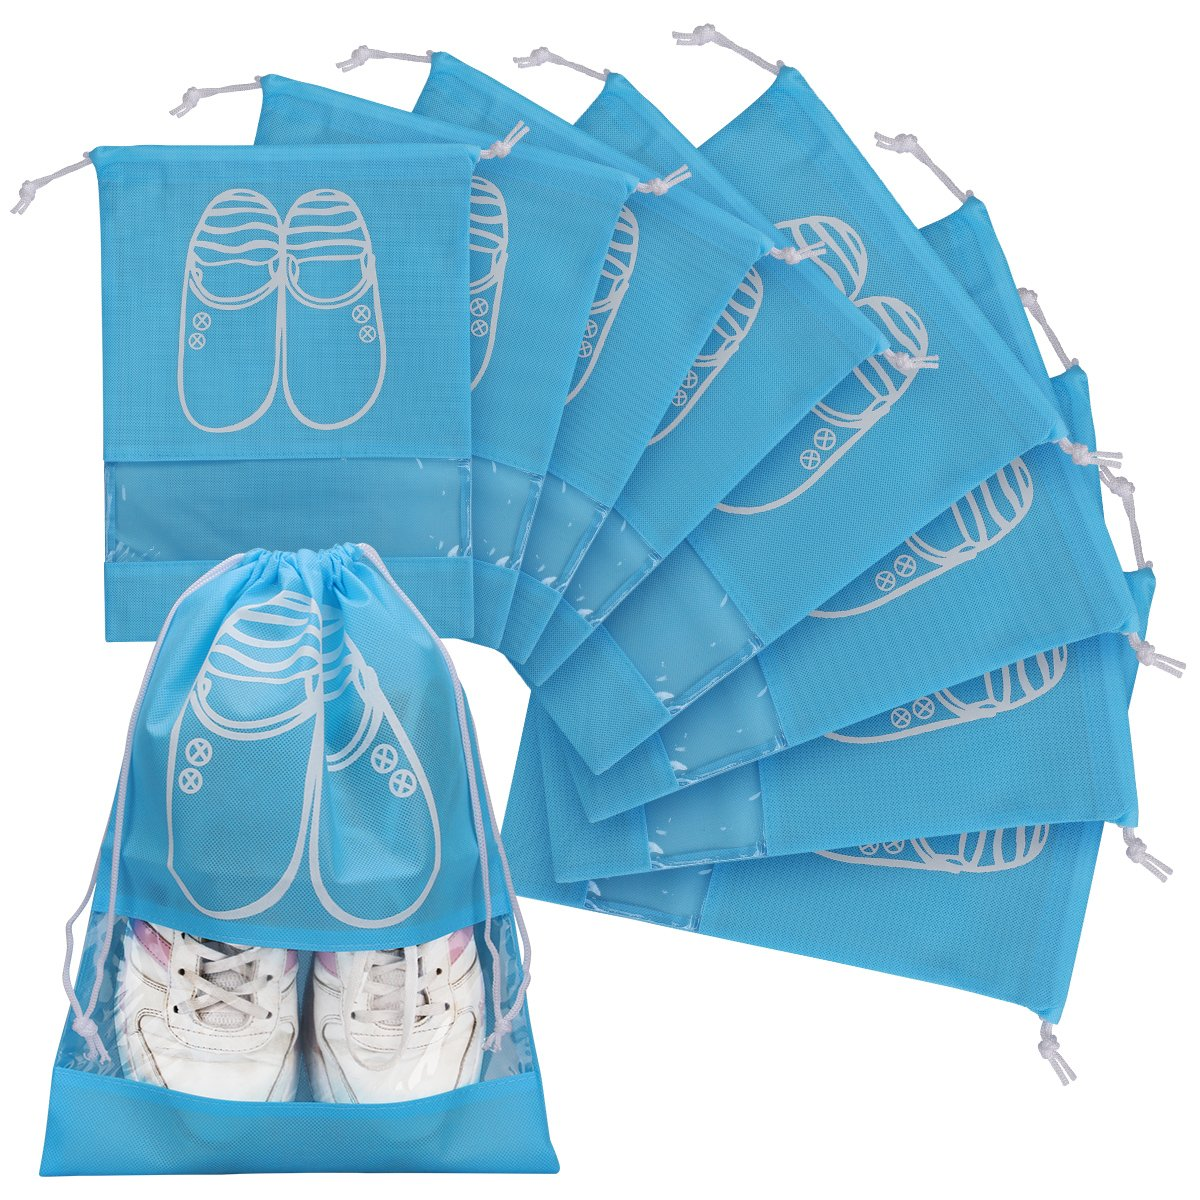 Promover Travel Shoe Bags Set of 8 Dust-proof Storage Bags Portable Drawstring Closure Clear Window for Men Women(Sky Blue)